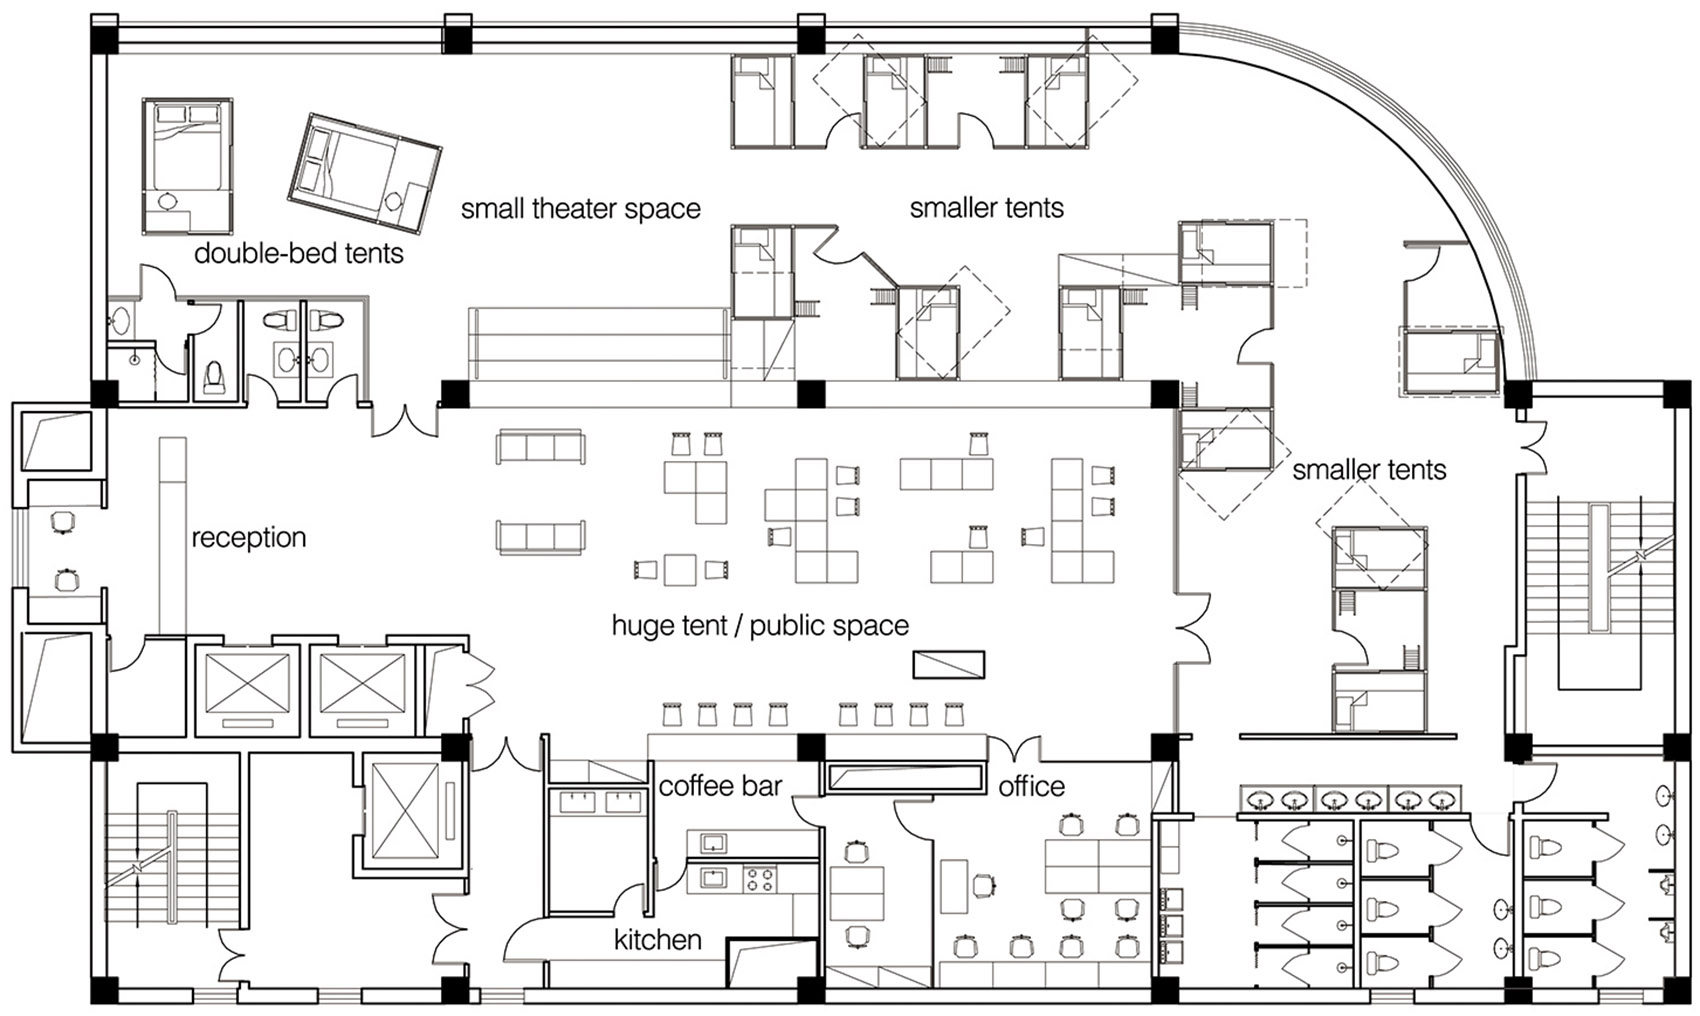 3-Together-Hostel-indoor-camping-space-for-youth-By-Jacobsen-Arquitetura